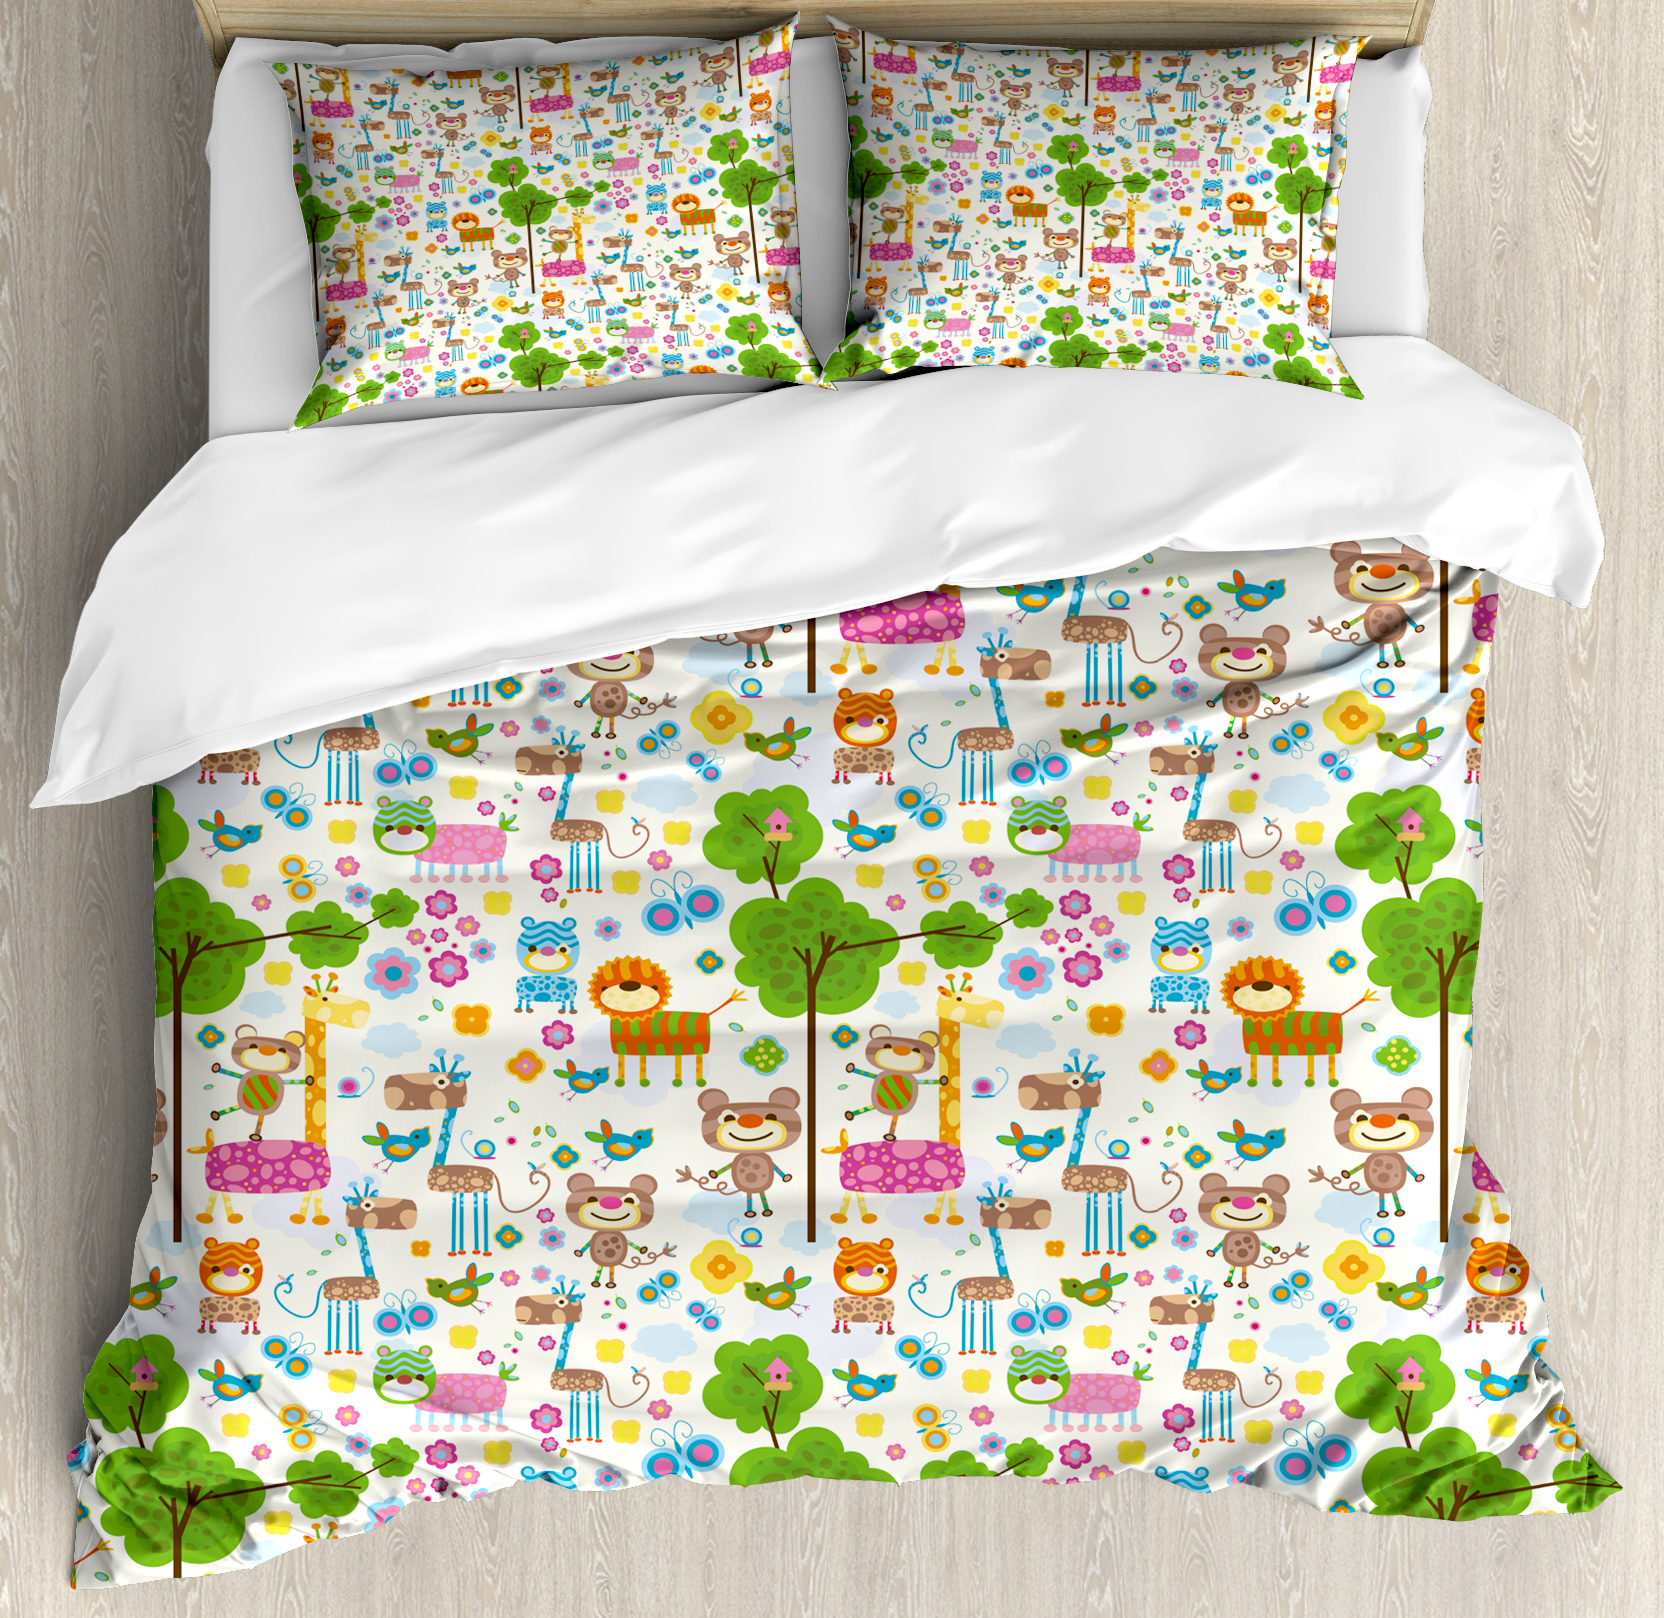 Kids Queen Size Duvet Cover Set, Happy Friendly Jungle Animals Giraffe Monkey and Butterfly Trees Flowers Zoo Nature, Decorative 3 Piece Bedding Set with 2 Pillow Shams, Multicolor, by Ambesonne